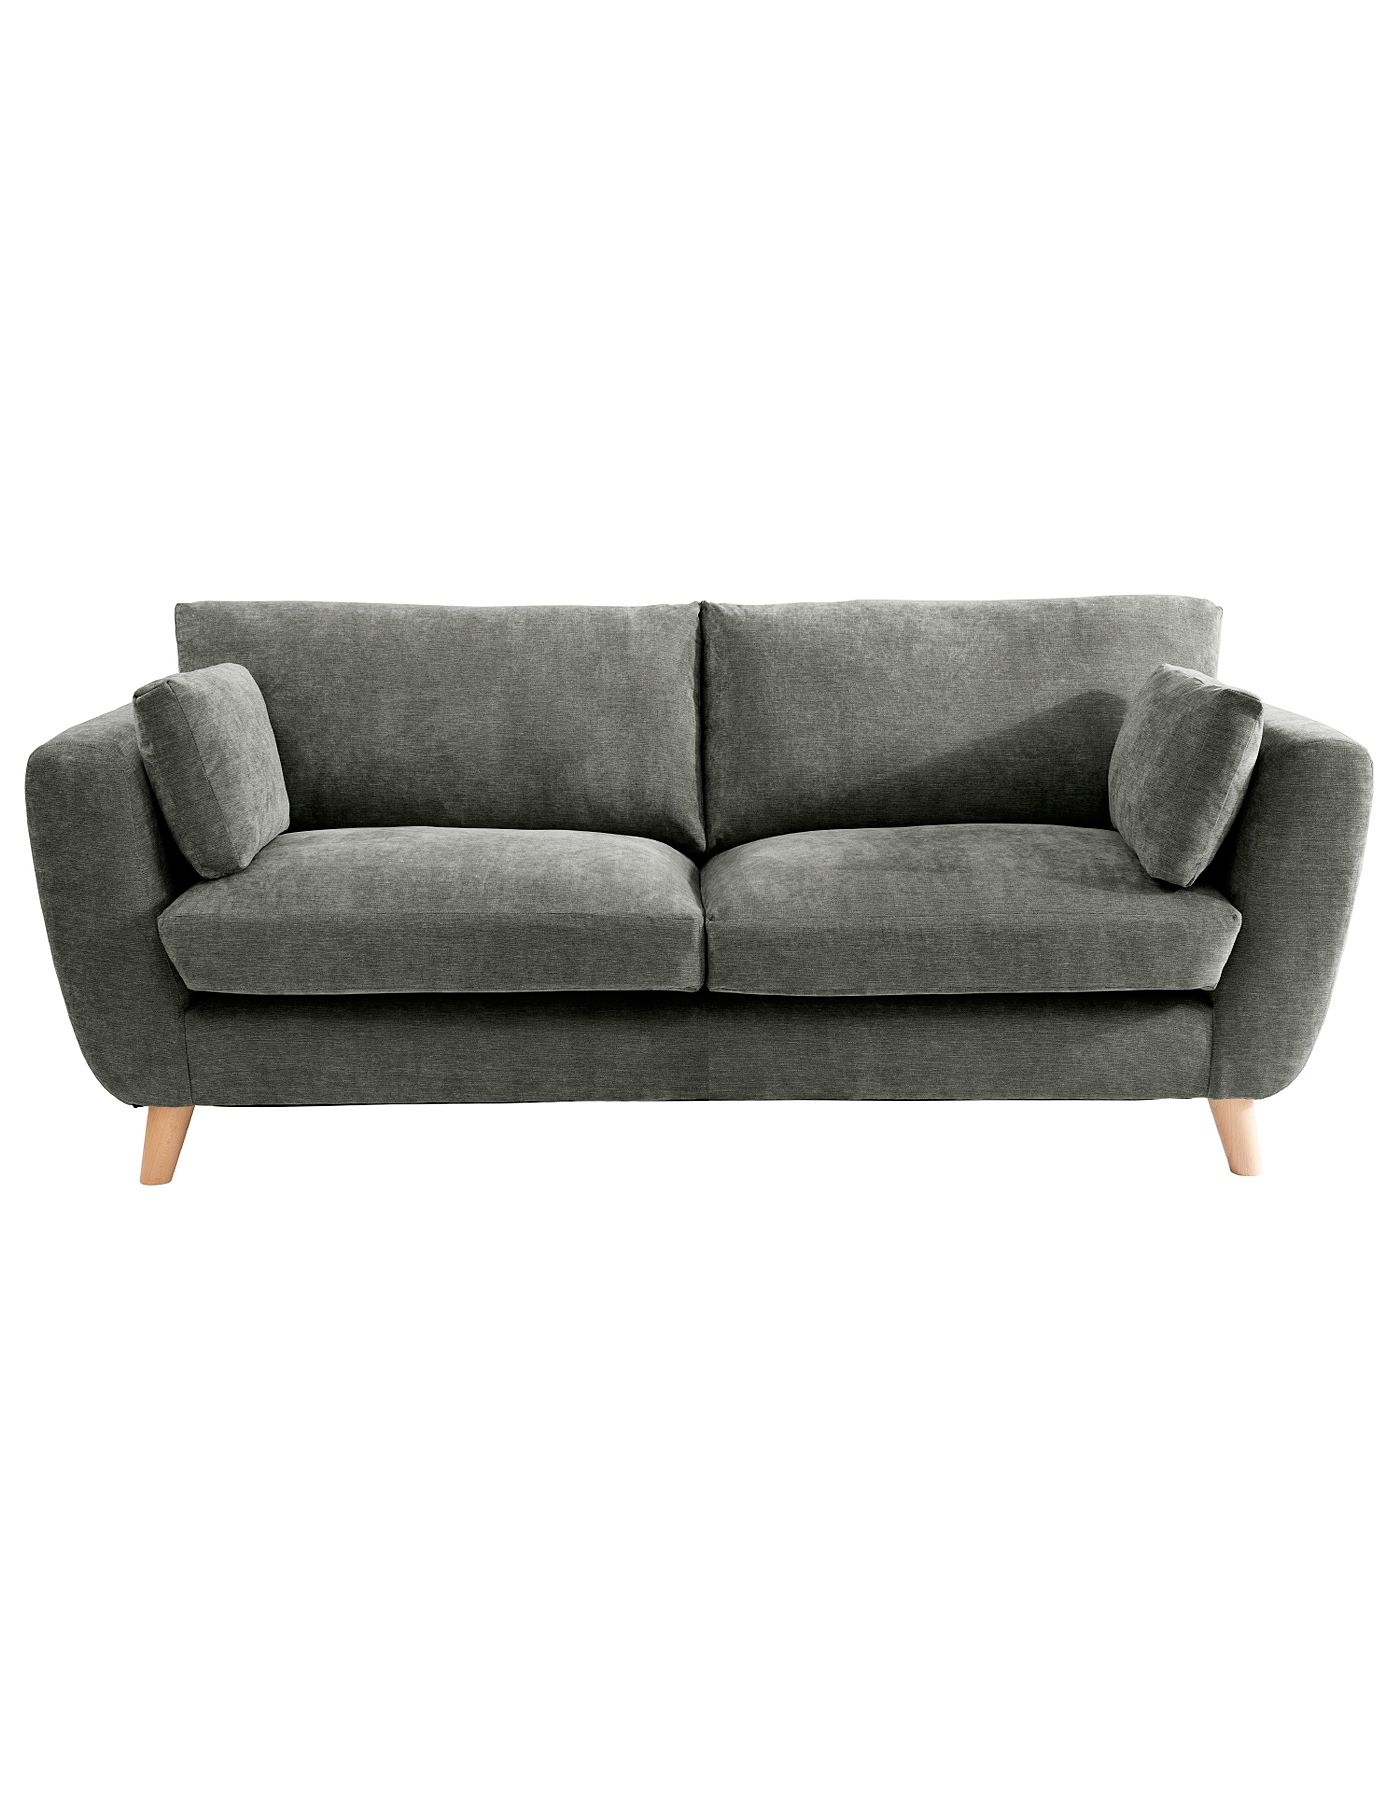 Interio Sofa George Sloane Large Sofa In Green Sofas And Armchairs Asda